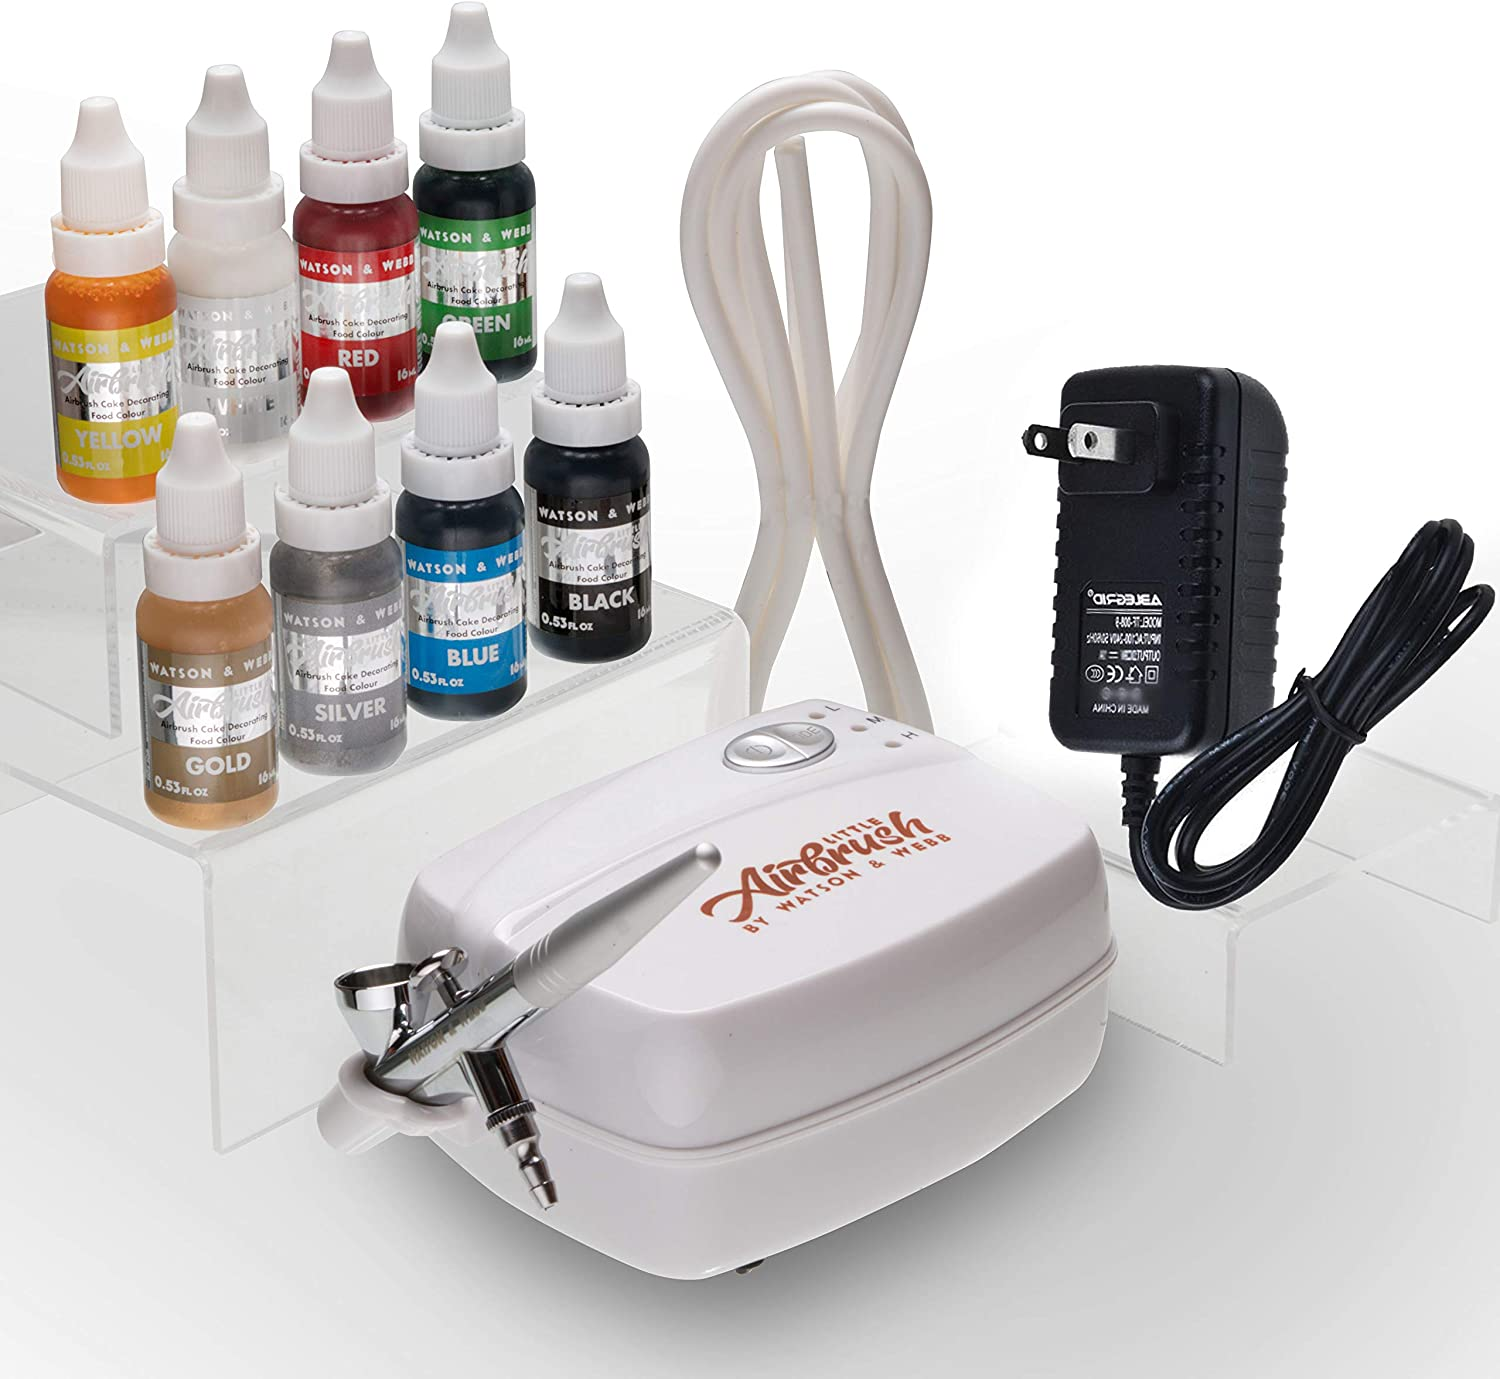 Airbrush Cake Decorating Kit Watson and Webb Little Airbrush LA1 Including 8 Colours